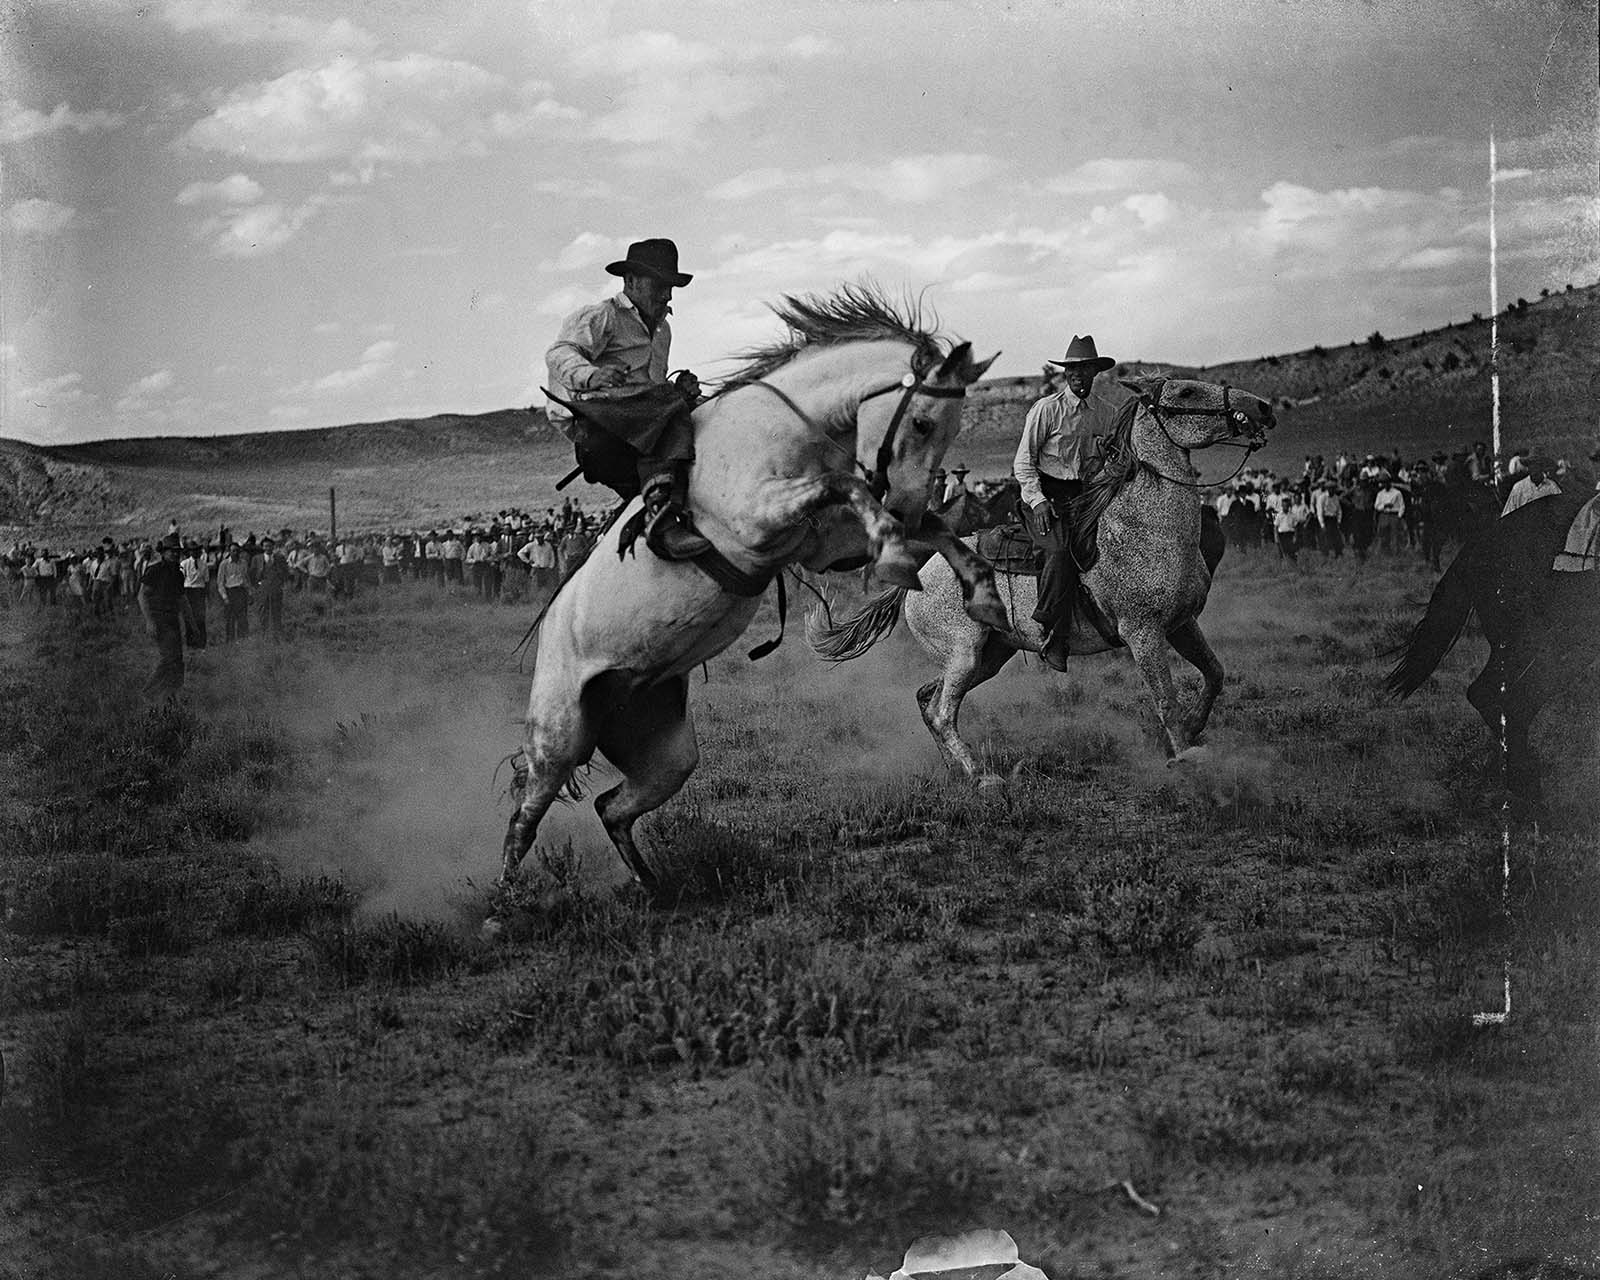 Cecil McMillin rides bucking horse. MS 3 Charles Belden Collection., McCracken Research Library. PN.67.597